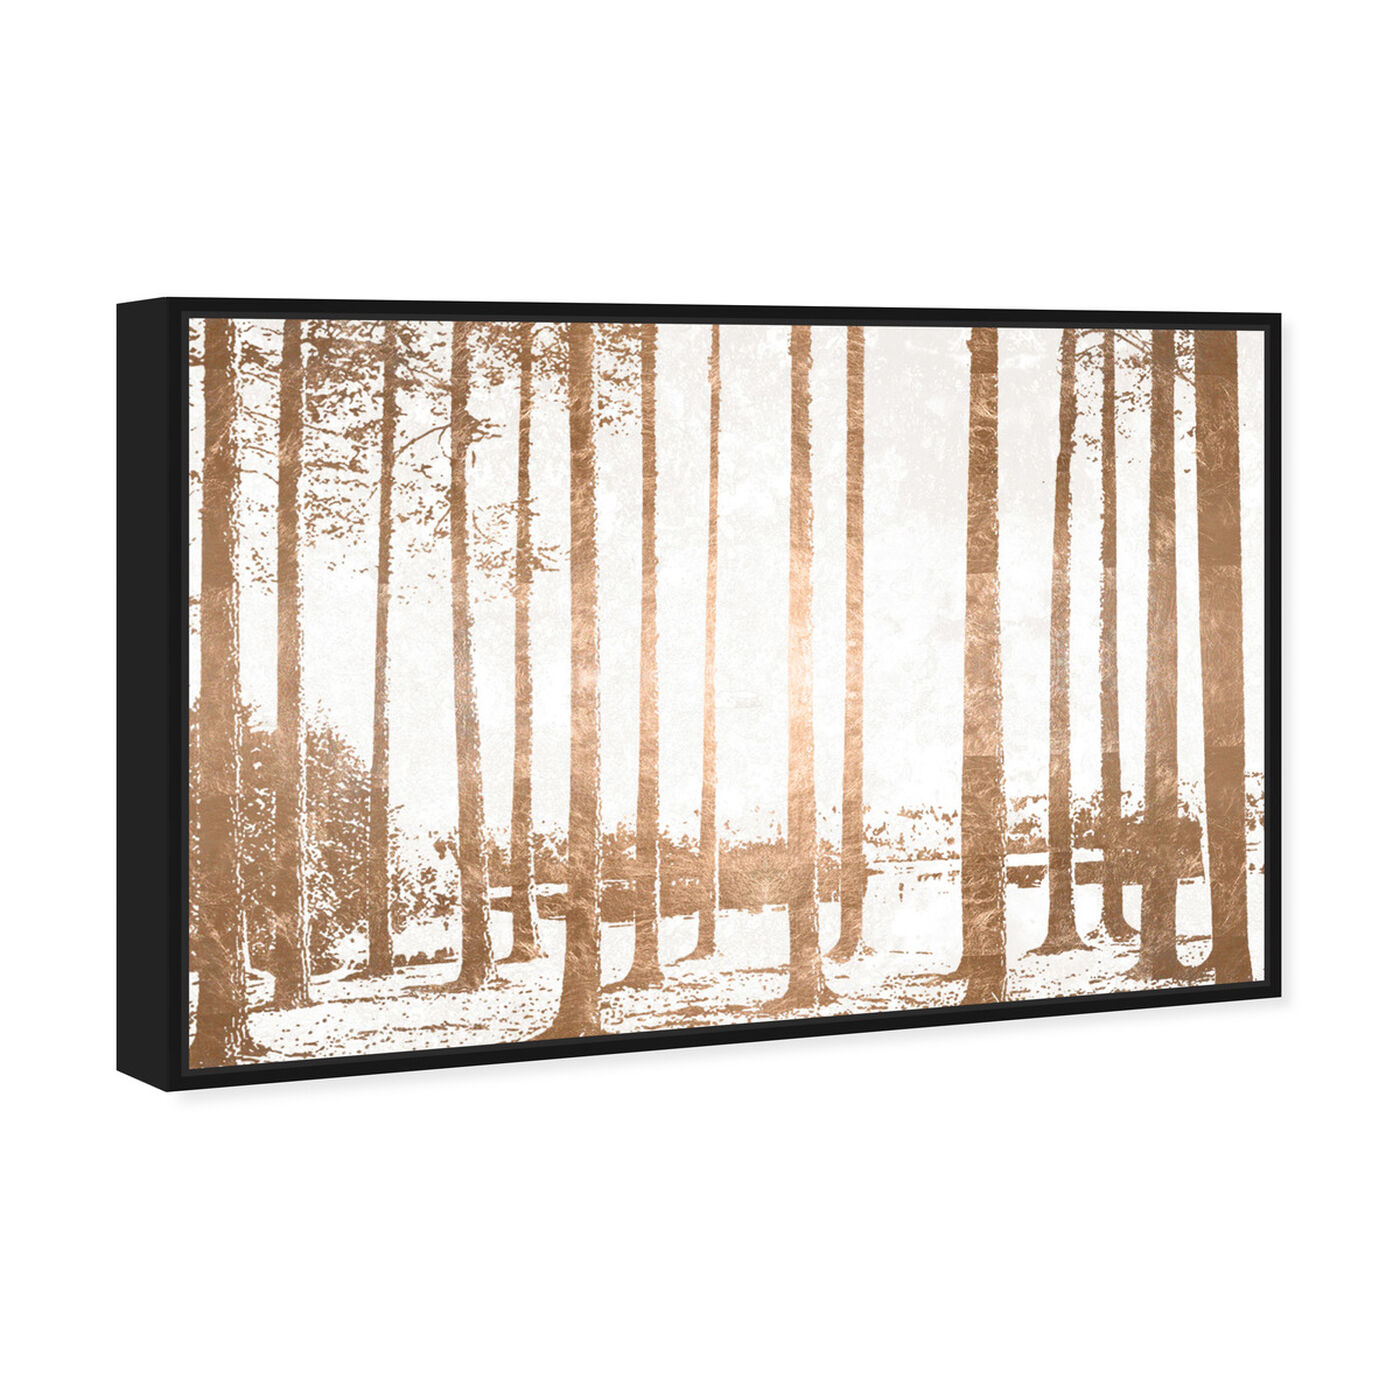 Angled view of Found in the Woods Copper featuring nature and landscape and forest landscapes art.